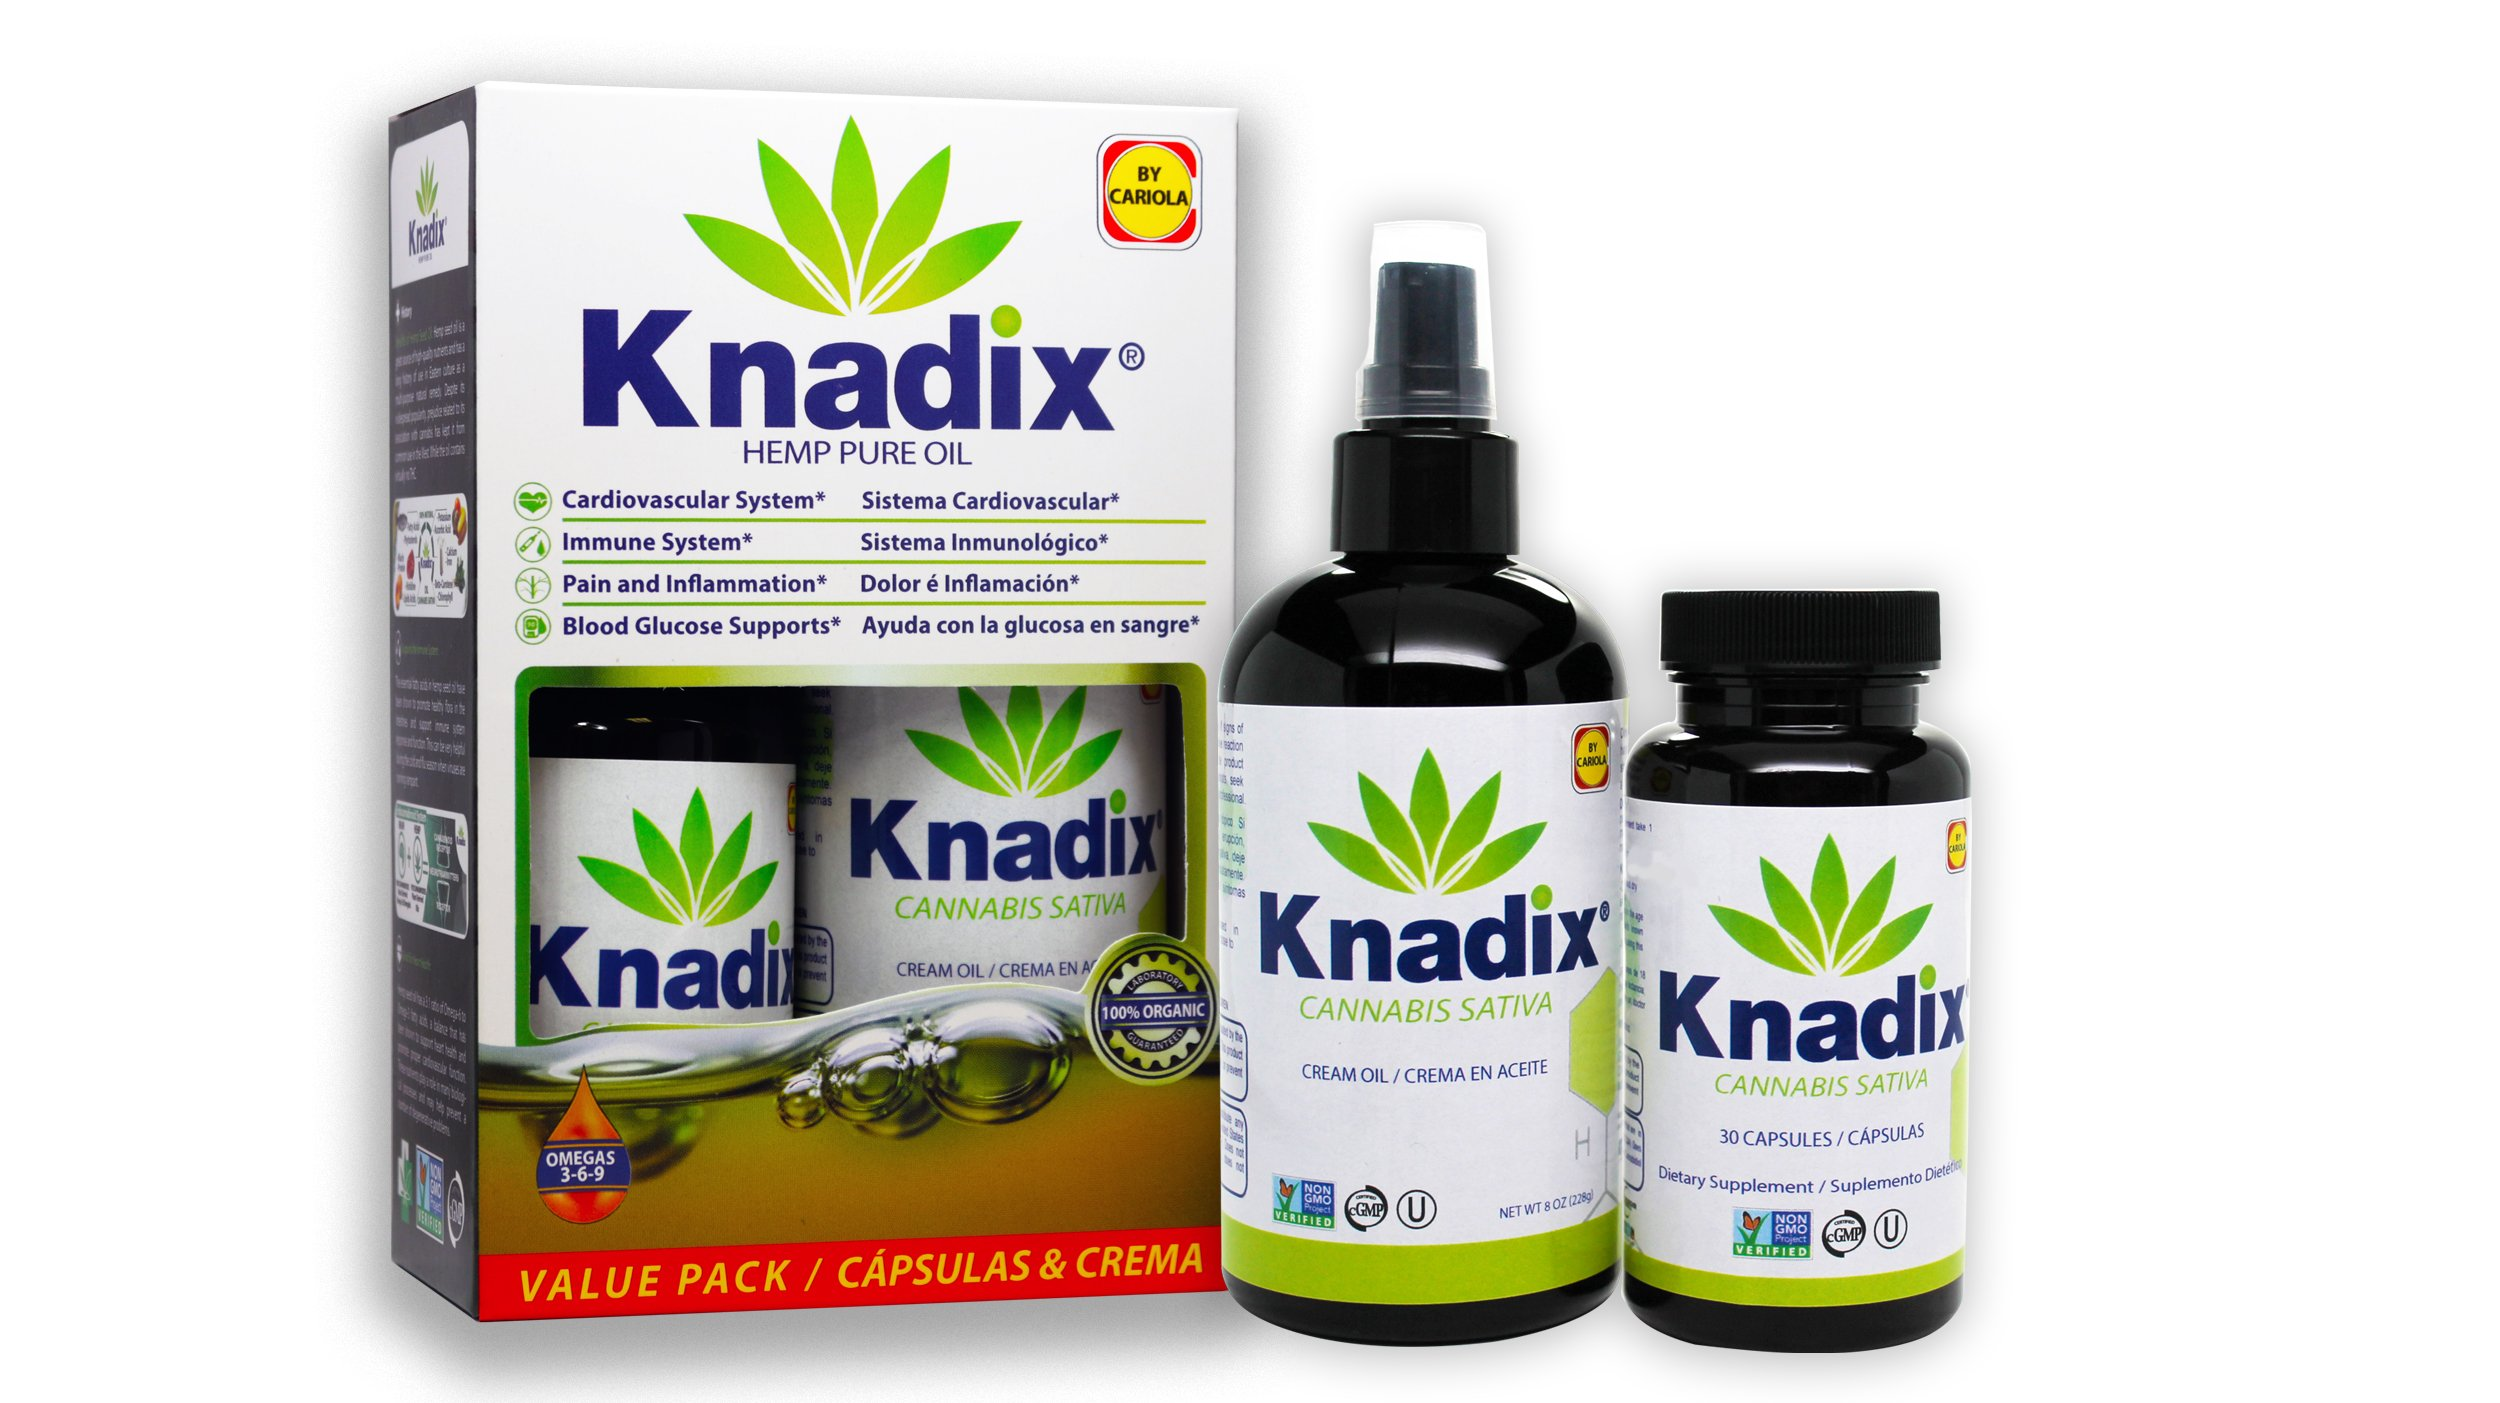 Knadix Natural -Value Pack- (Hemp Oil Cream & Bottle of 30 capsules)